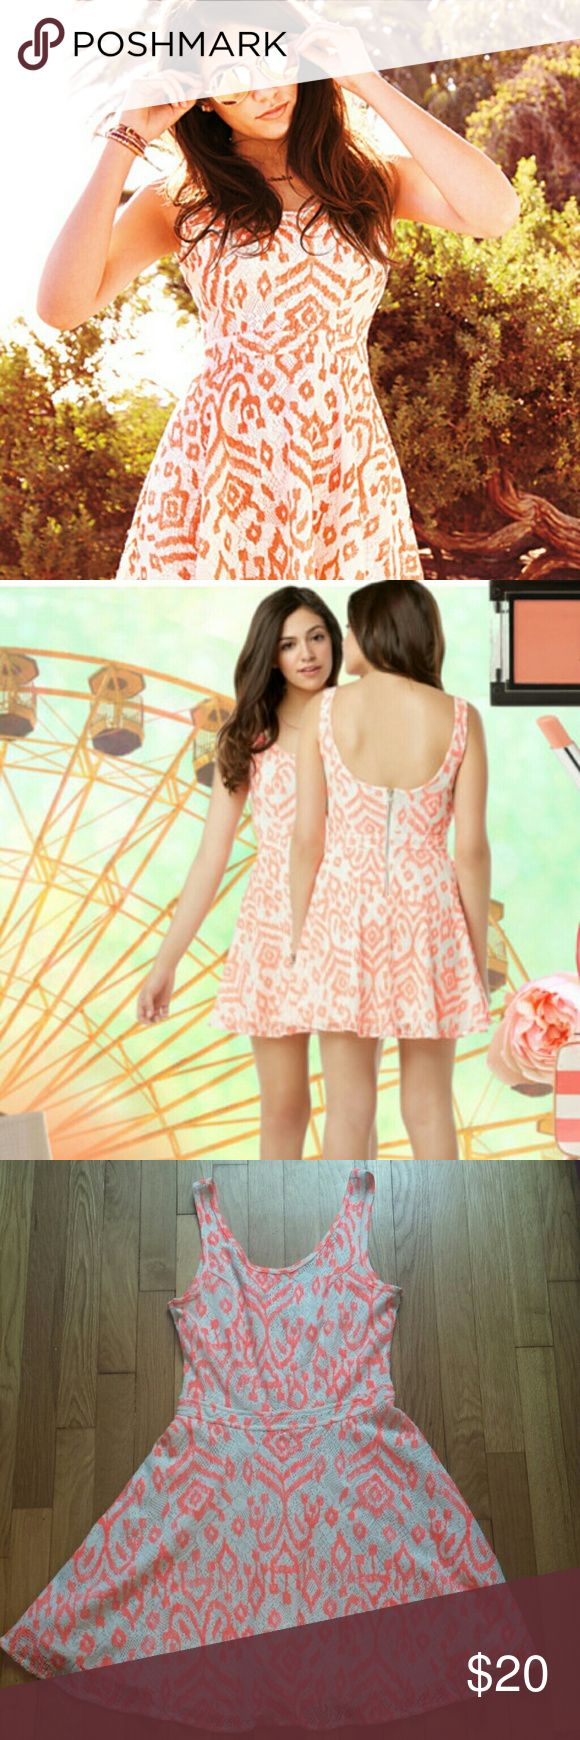 Bethany Mota Neon Dress Super cute orange/white neon Bethany Mota for Aeropostale dress. Zipper closure in back, size S. Lightly worn, excellent condition. Great fun summer days or nights out. Pair with sandals, heels, and some sparkly bracelets for a fun look! Aeropostale Dresses Mini